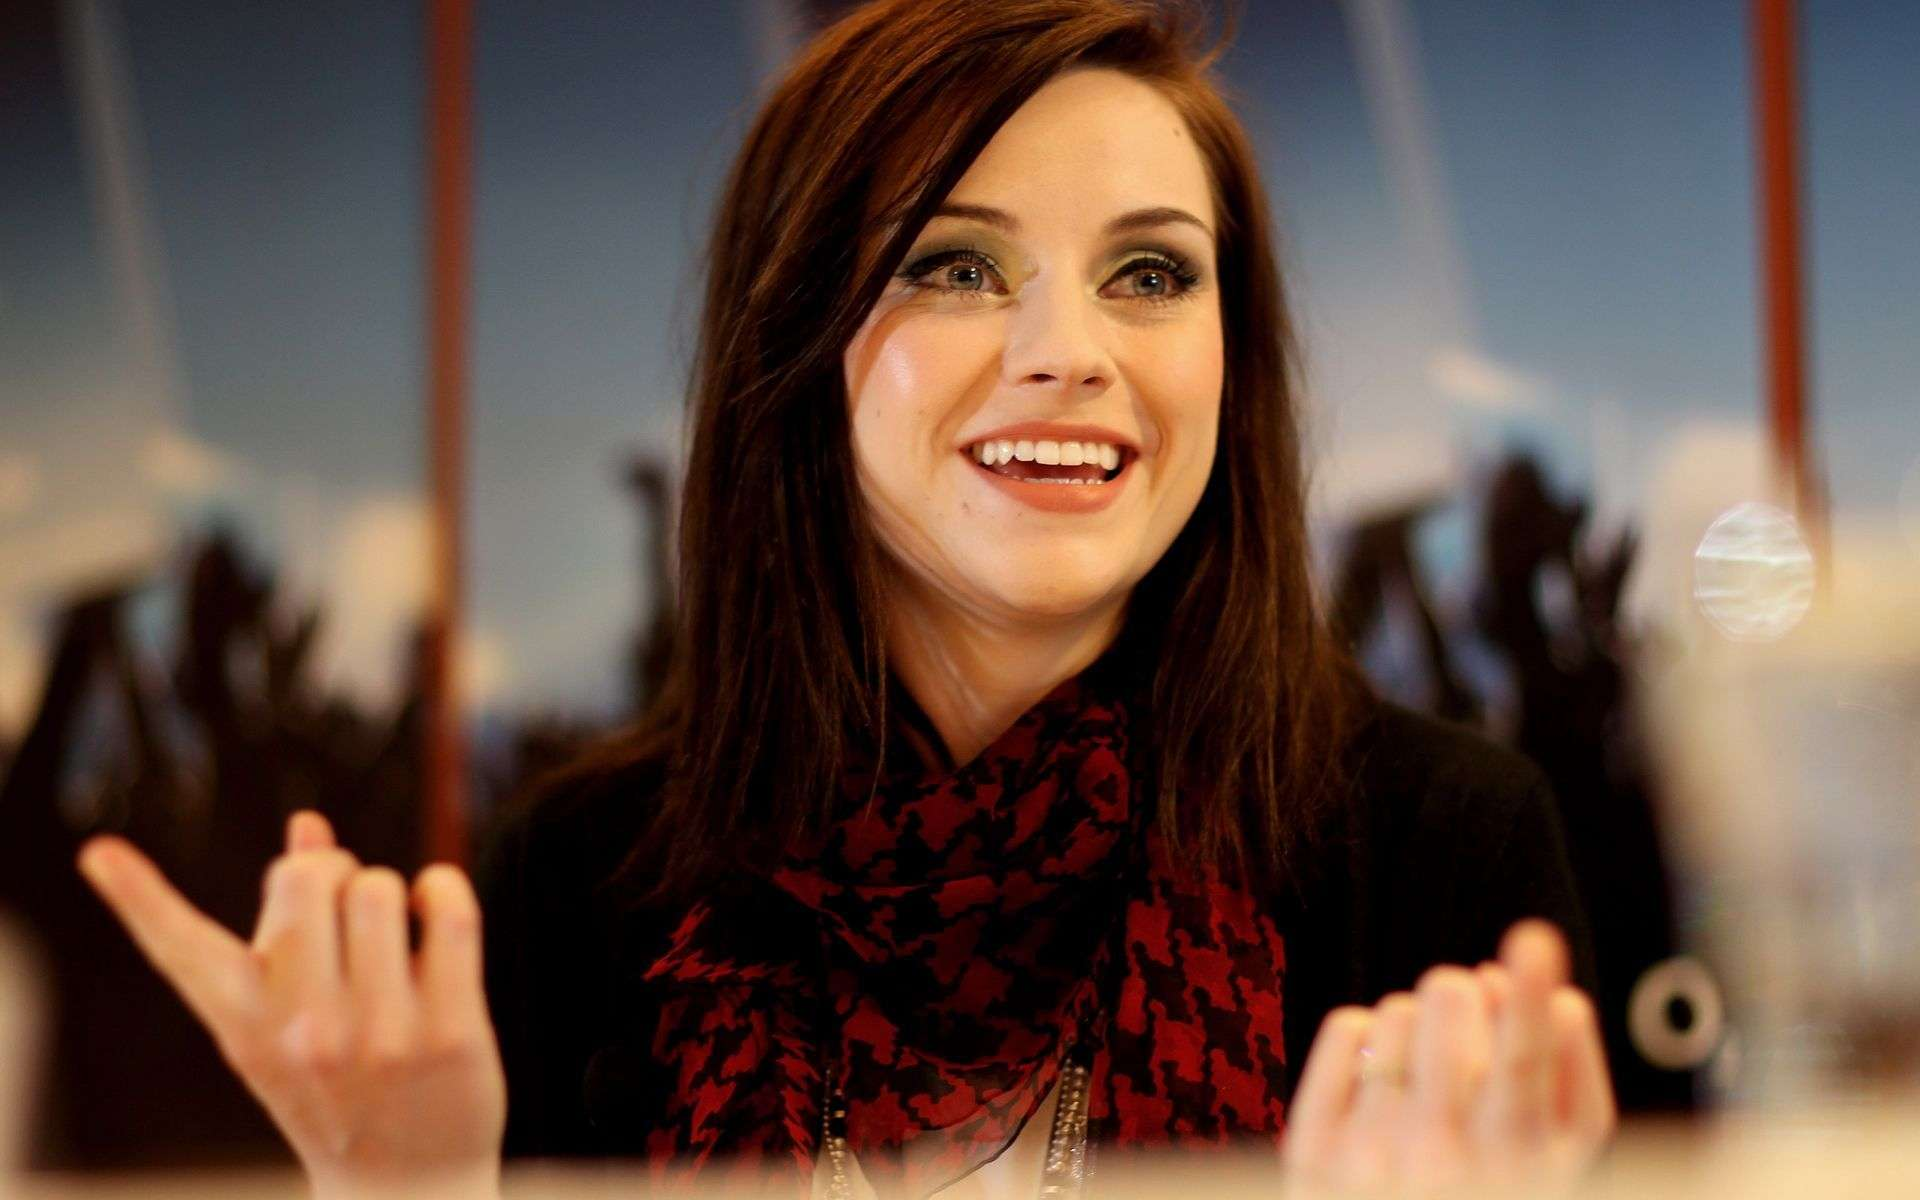 Cute Girl Wallpaper For Facebook Timeline Amy Macdonald Wallpaper 01 Wallpapers Hd Wallpapers